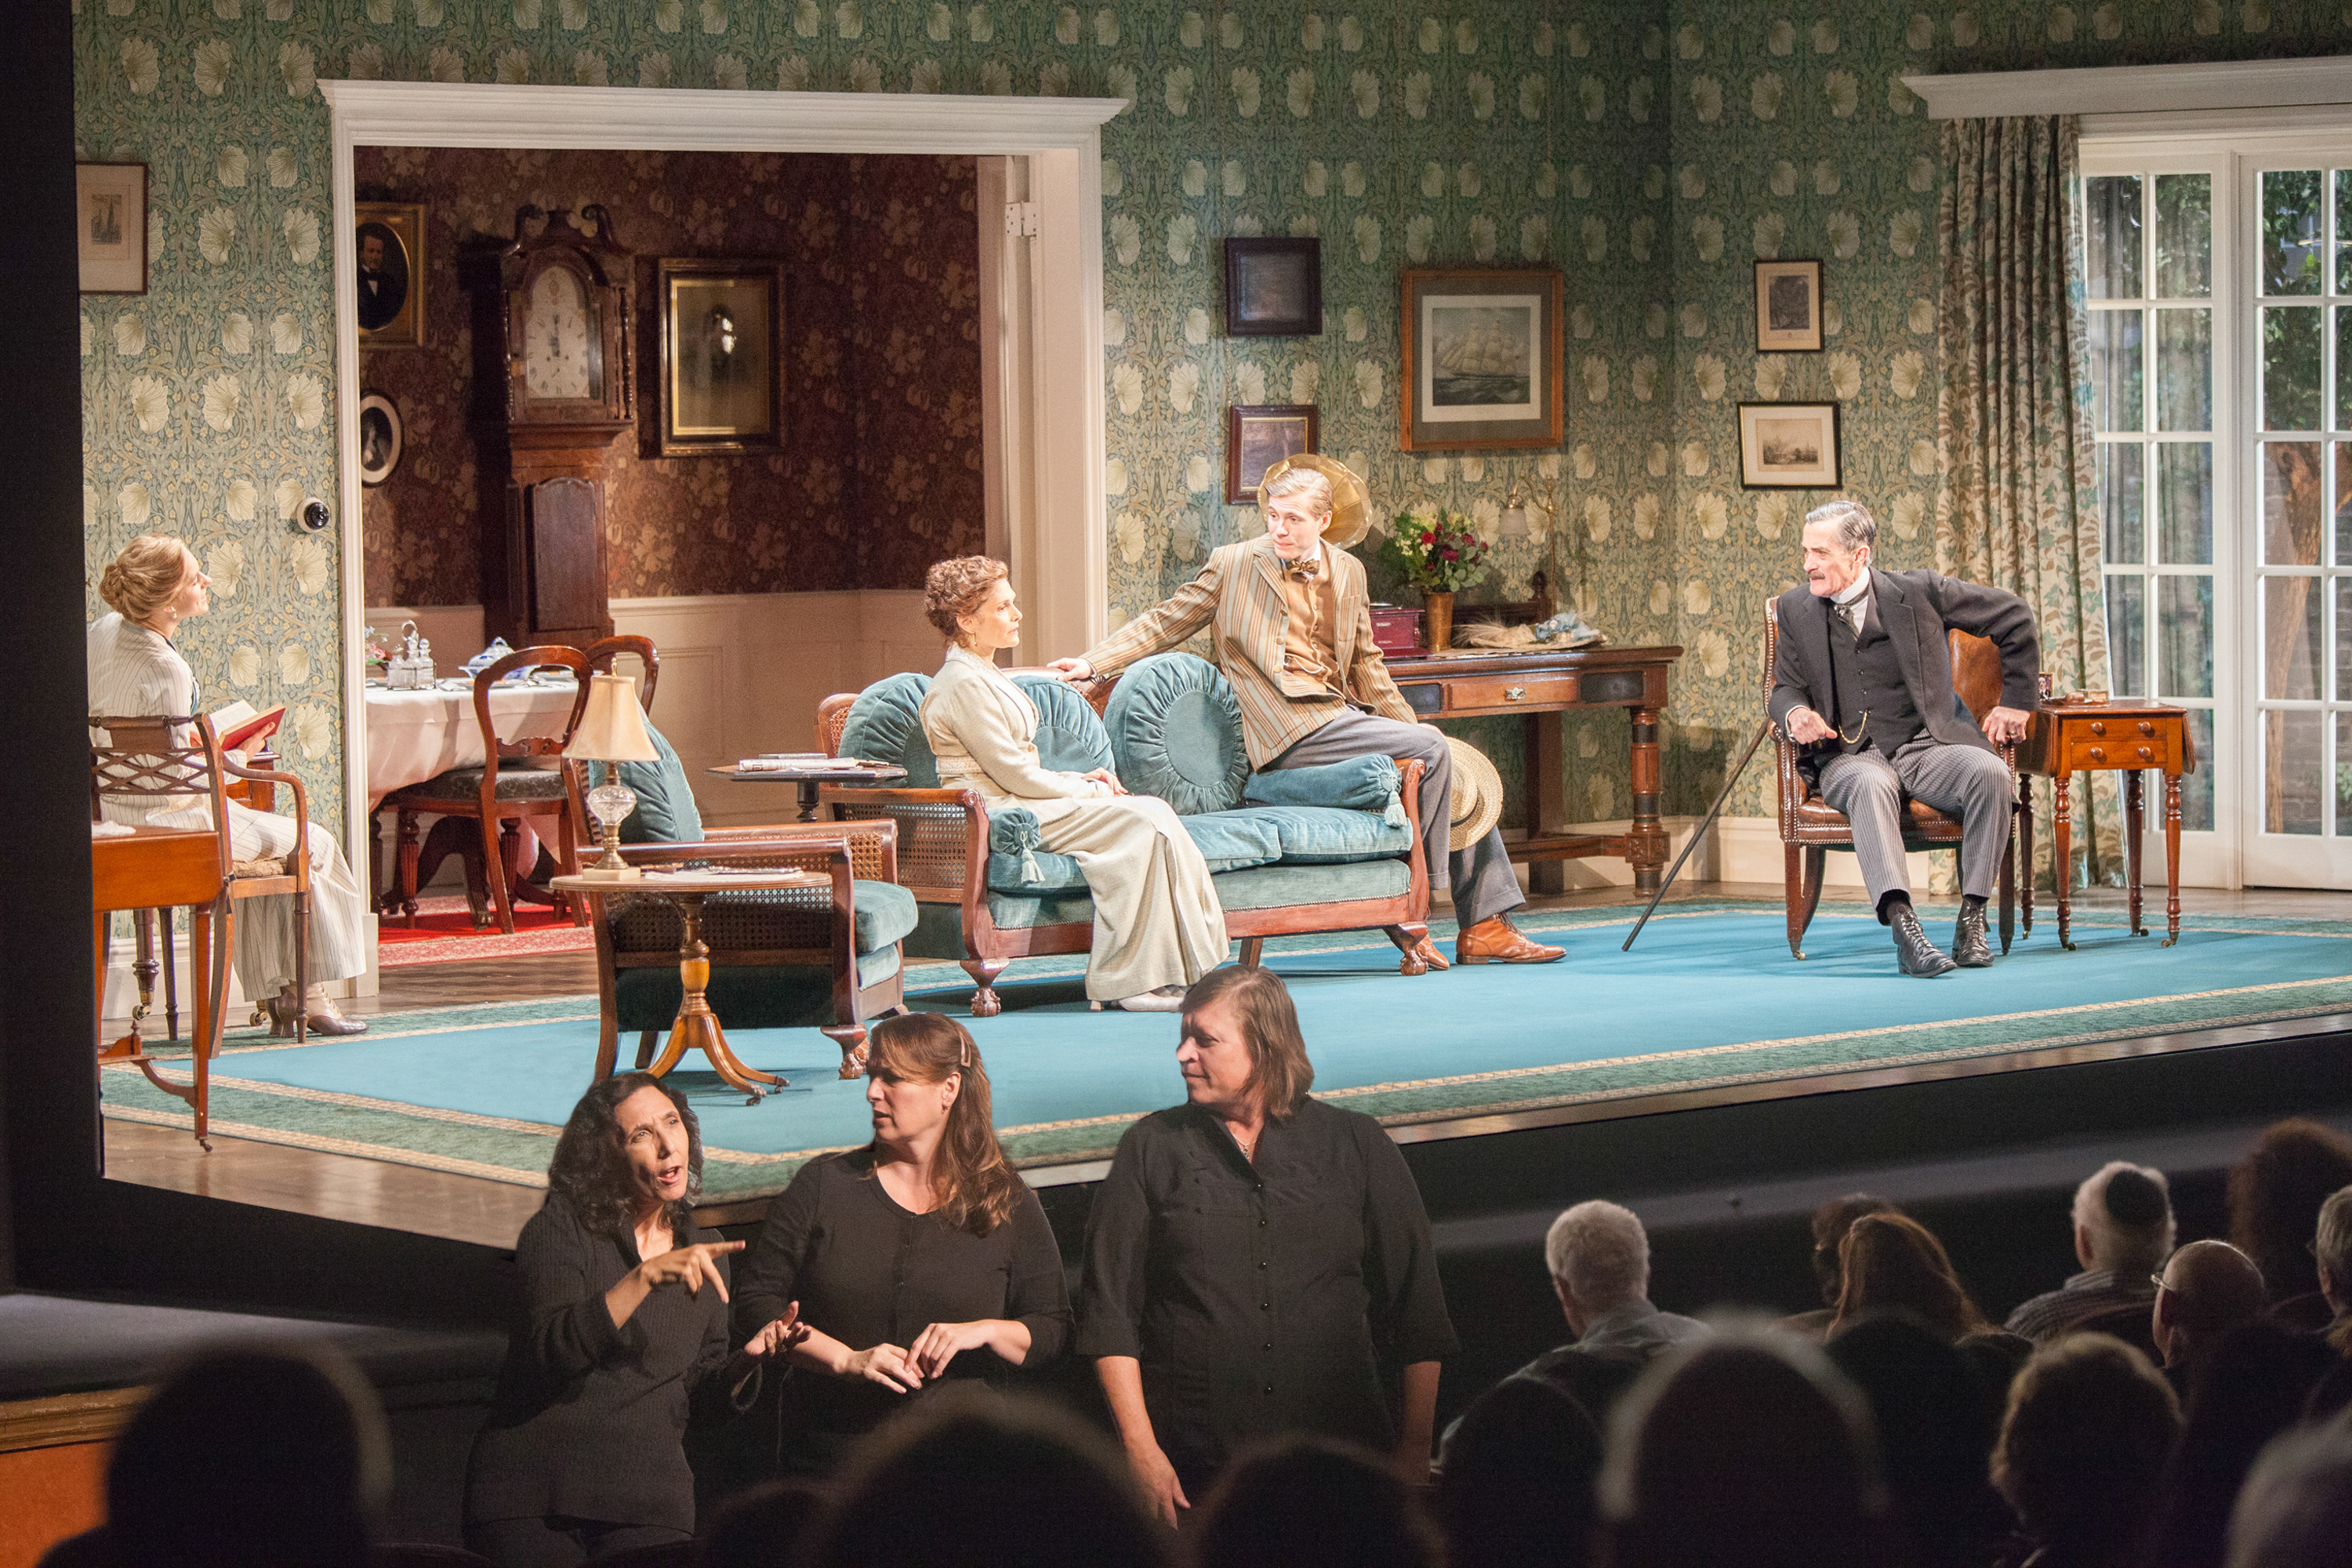 An ASL interpreted performance of The Winslow Boy by Roundabout Theatre.